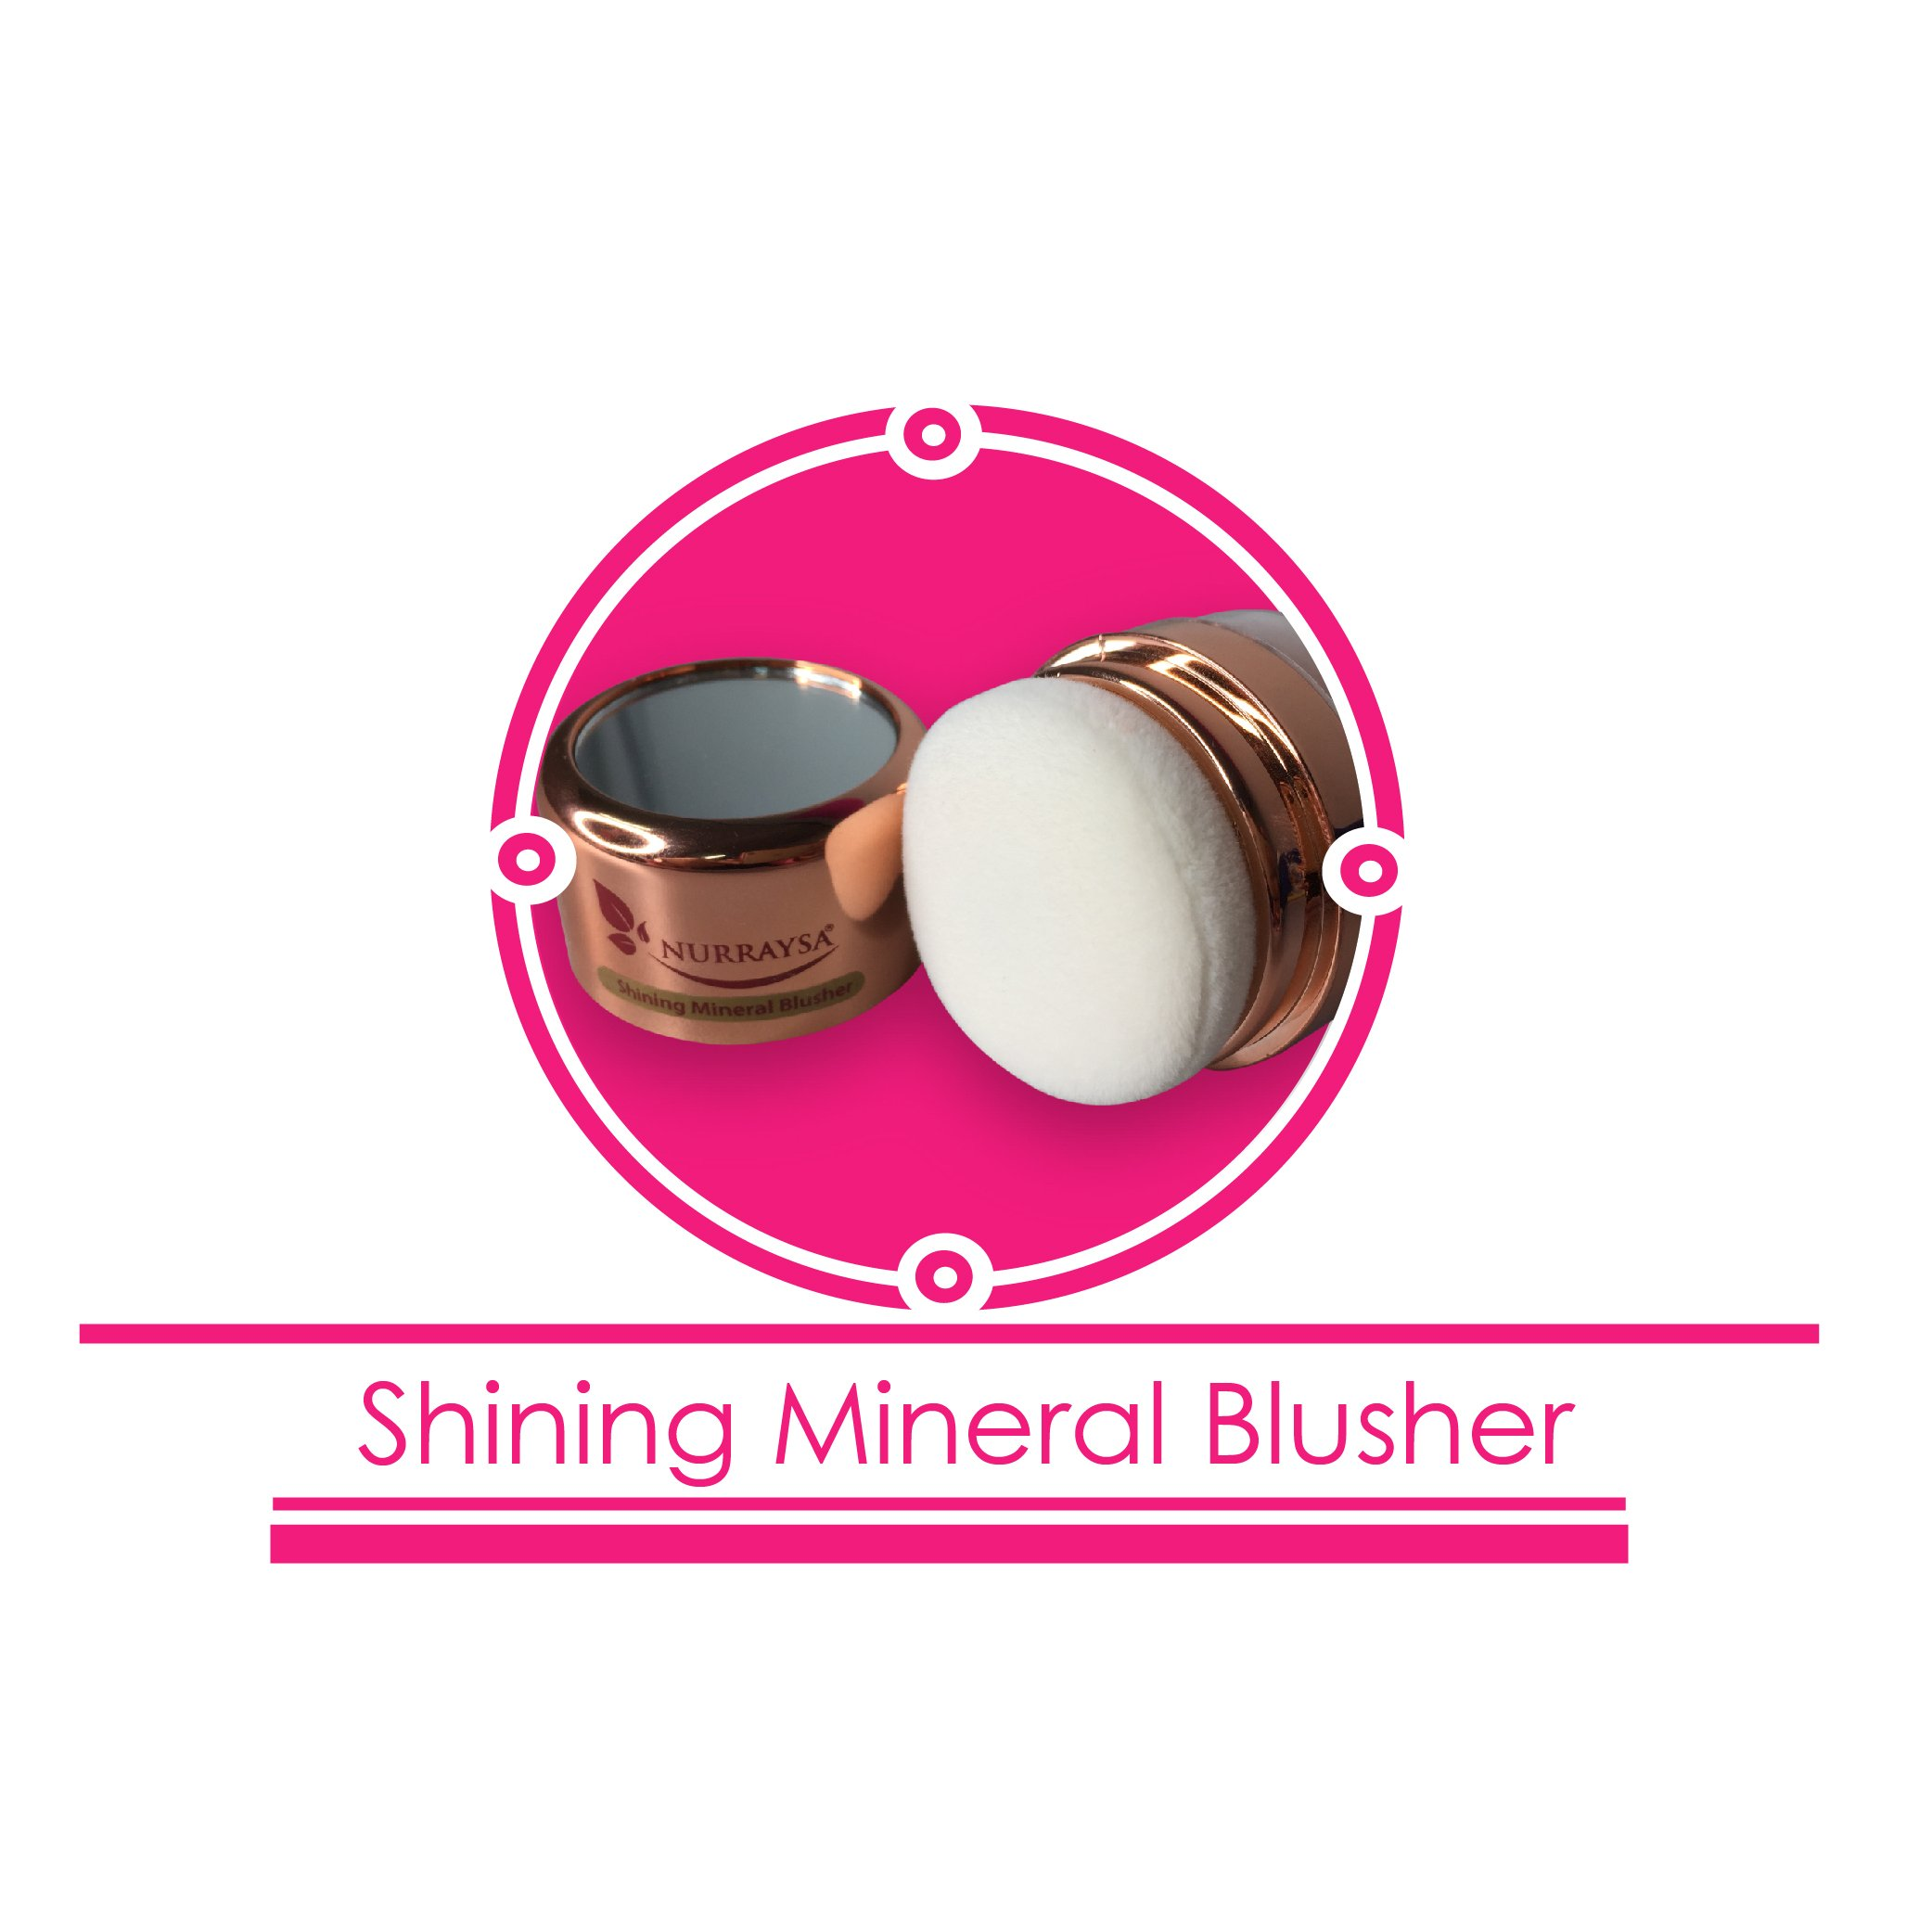 Shining Mineral Blusher